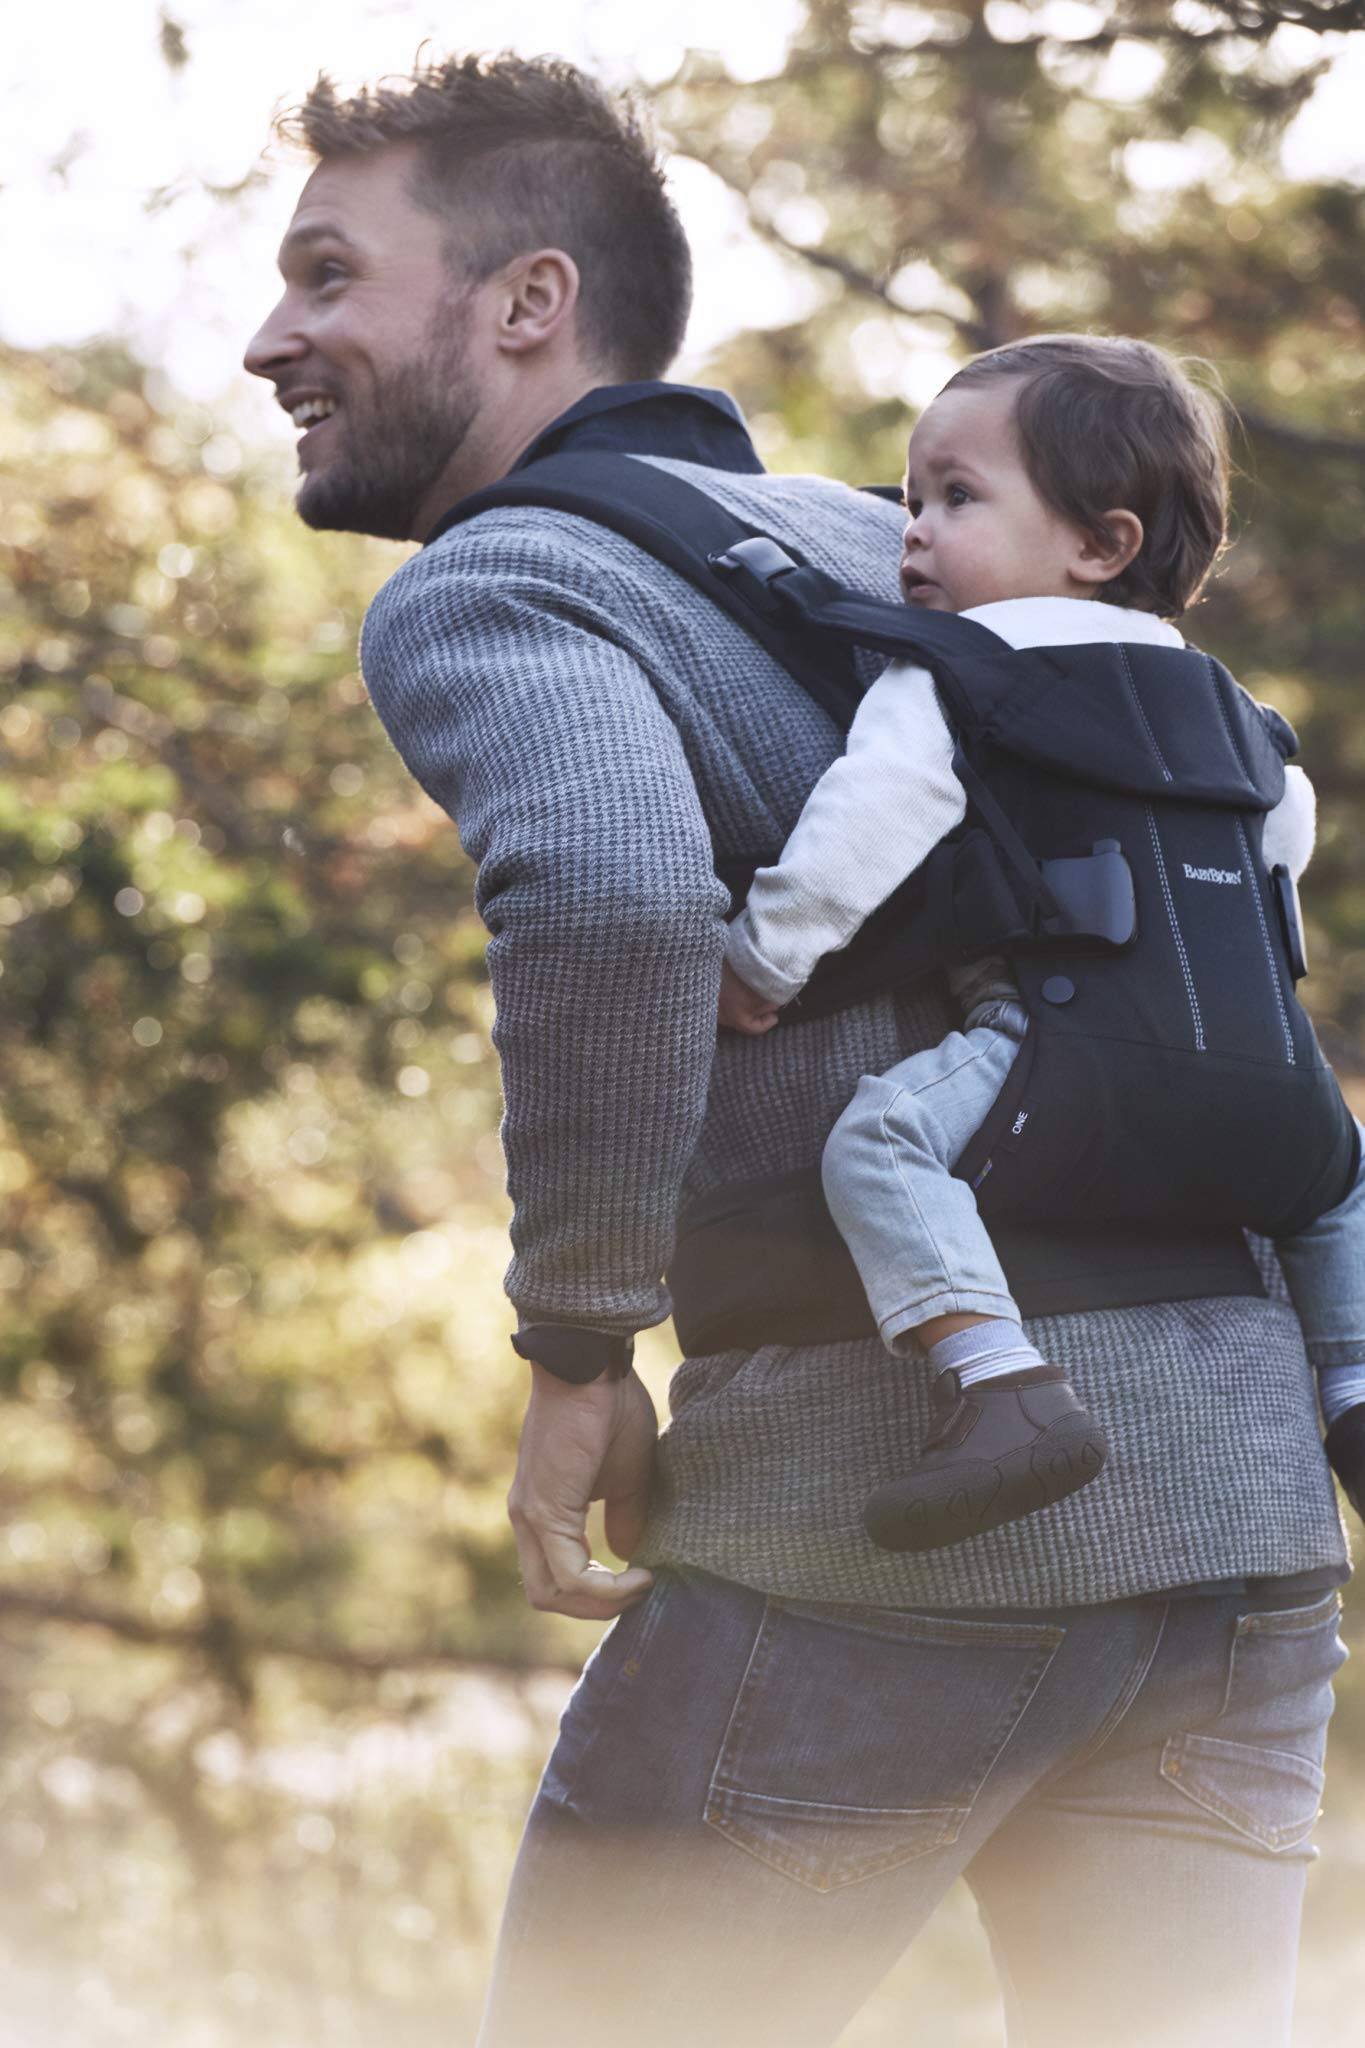 BABYBJÖRN Baby Carrier One, Cotton Mix, Black, 2018 Edition Baby Bjorn The latest version with soft and breathable mesh that dries quickly Ergonomic baby carrier with excellent support 4 carrying positions: facing in (two height positions), facing out or on your back 13